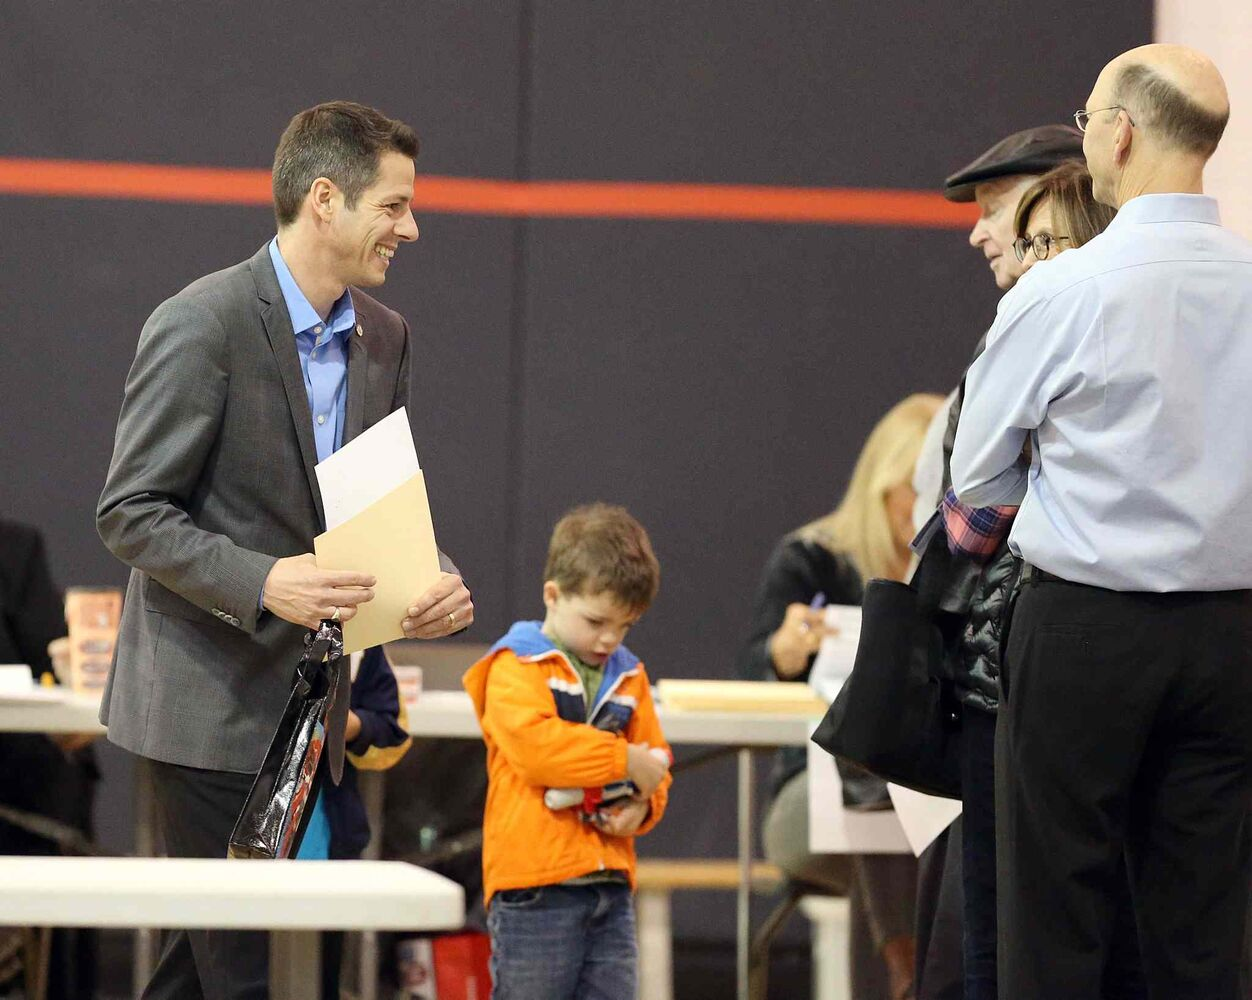 Mayoral candidate Brian Bowman votes in the civic election. (Jason Halstead / Winnipeg Free Press)